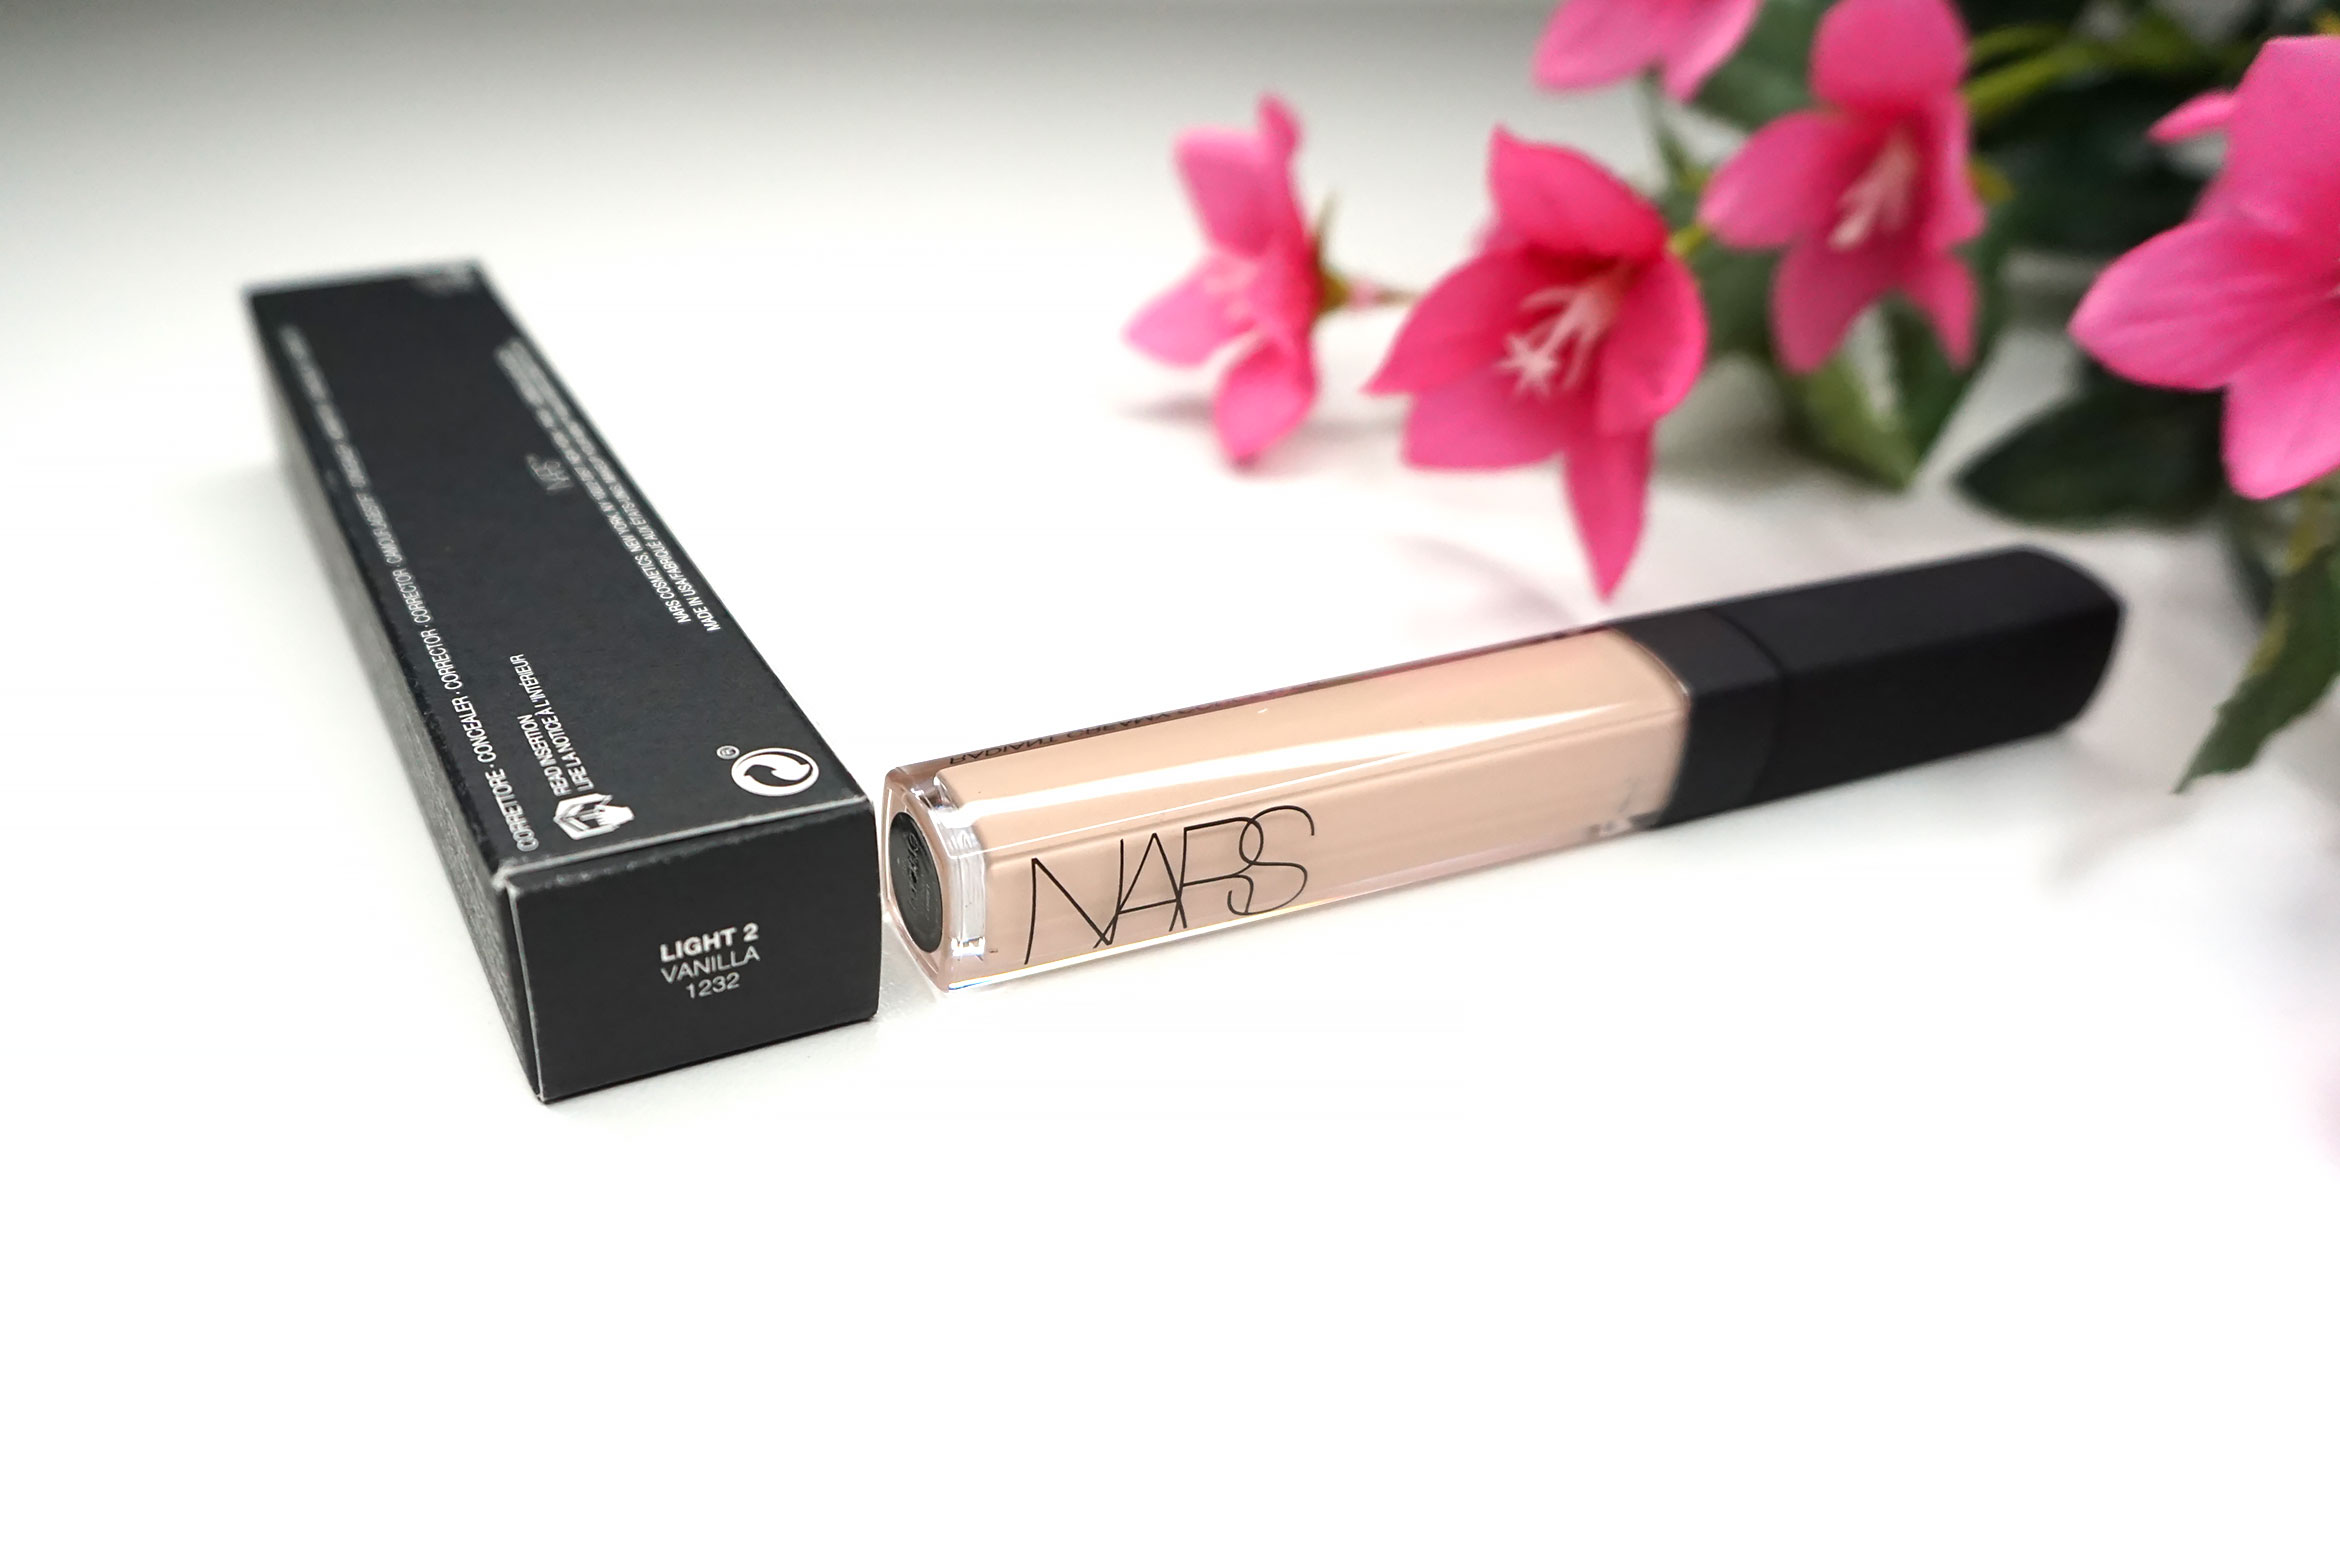 Nars-radiant-creamy-concealer-review-light-2-vanilla-3